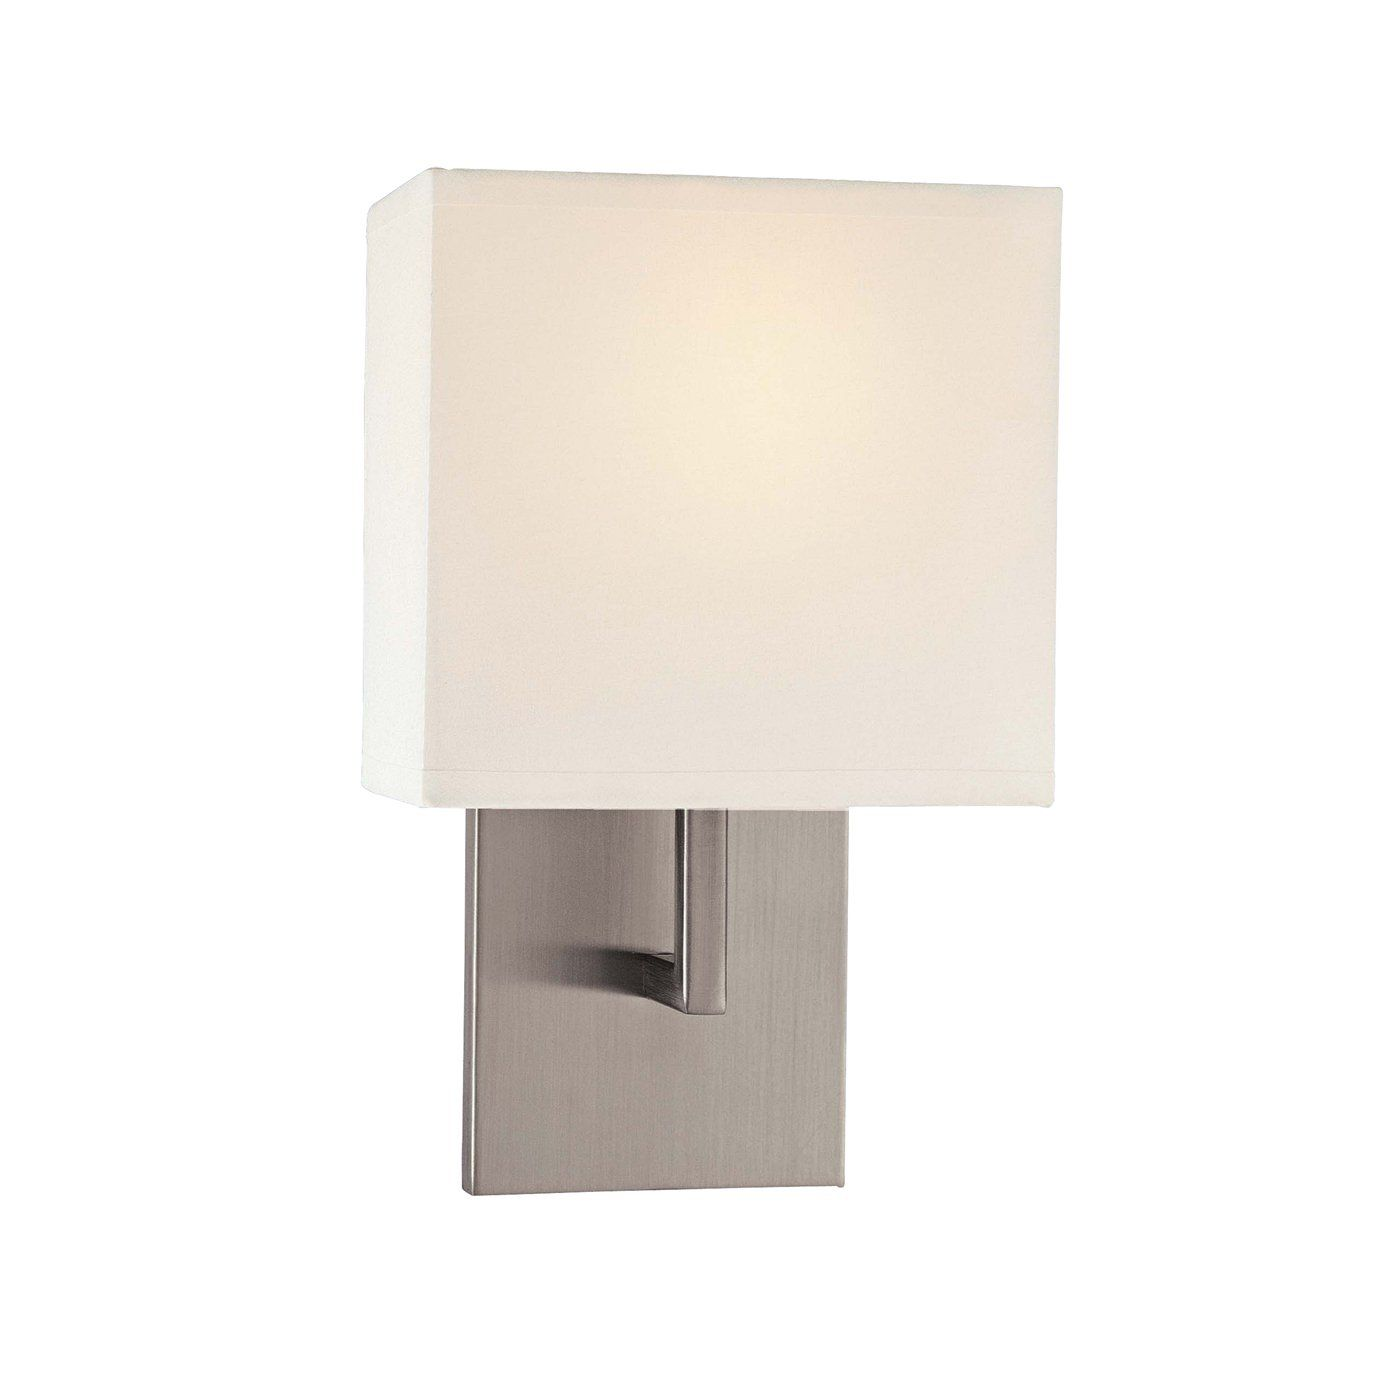 Narrow Bathroom Wall Sconces Wall Sconce Lighting Wall Sconce